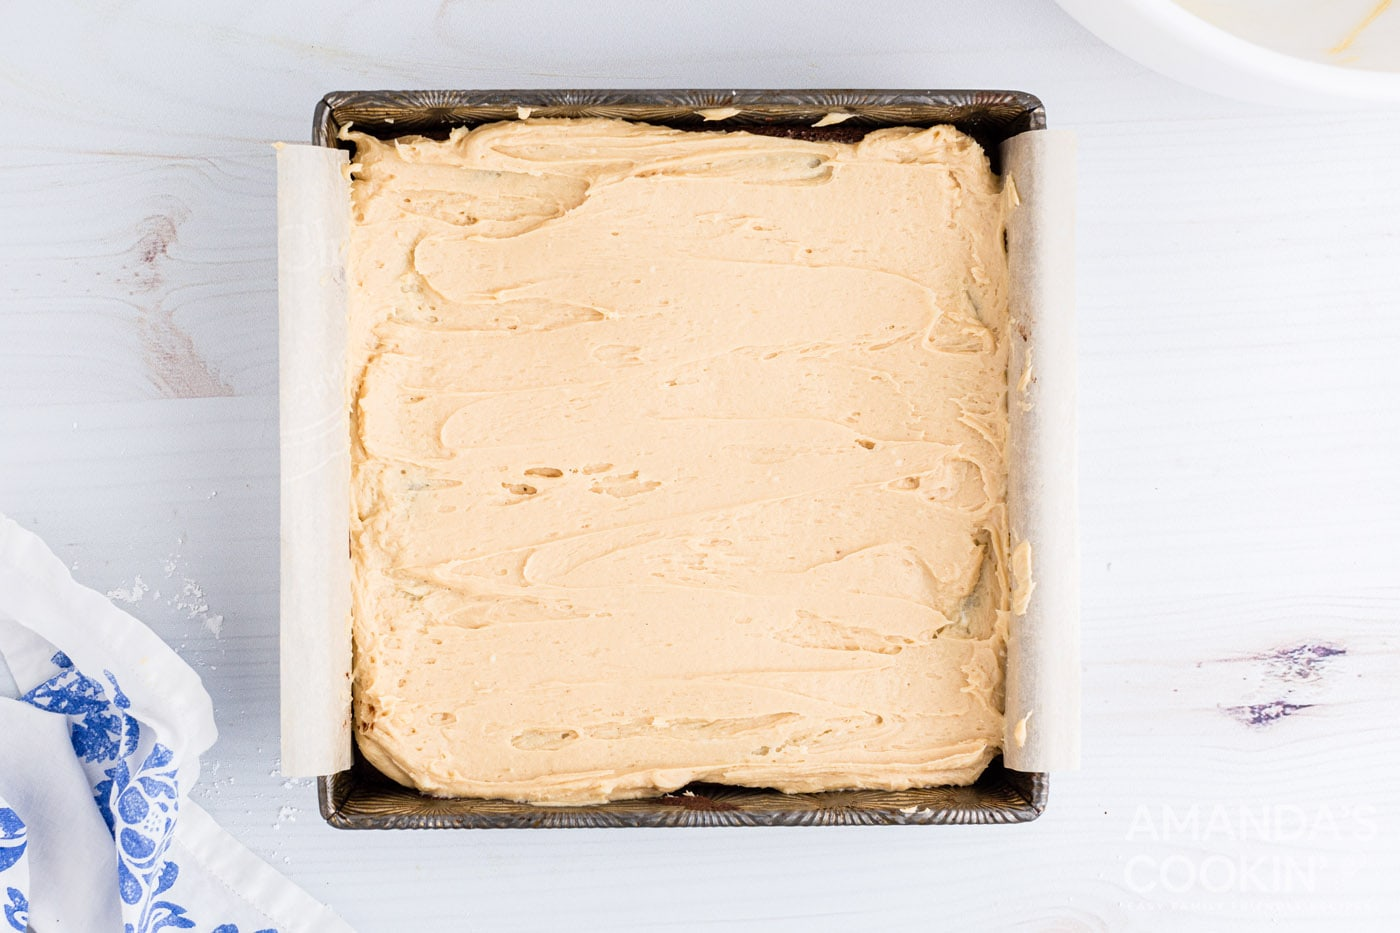 peanut butter frosting spread over brownies